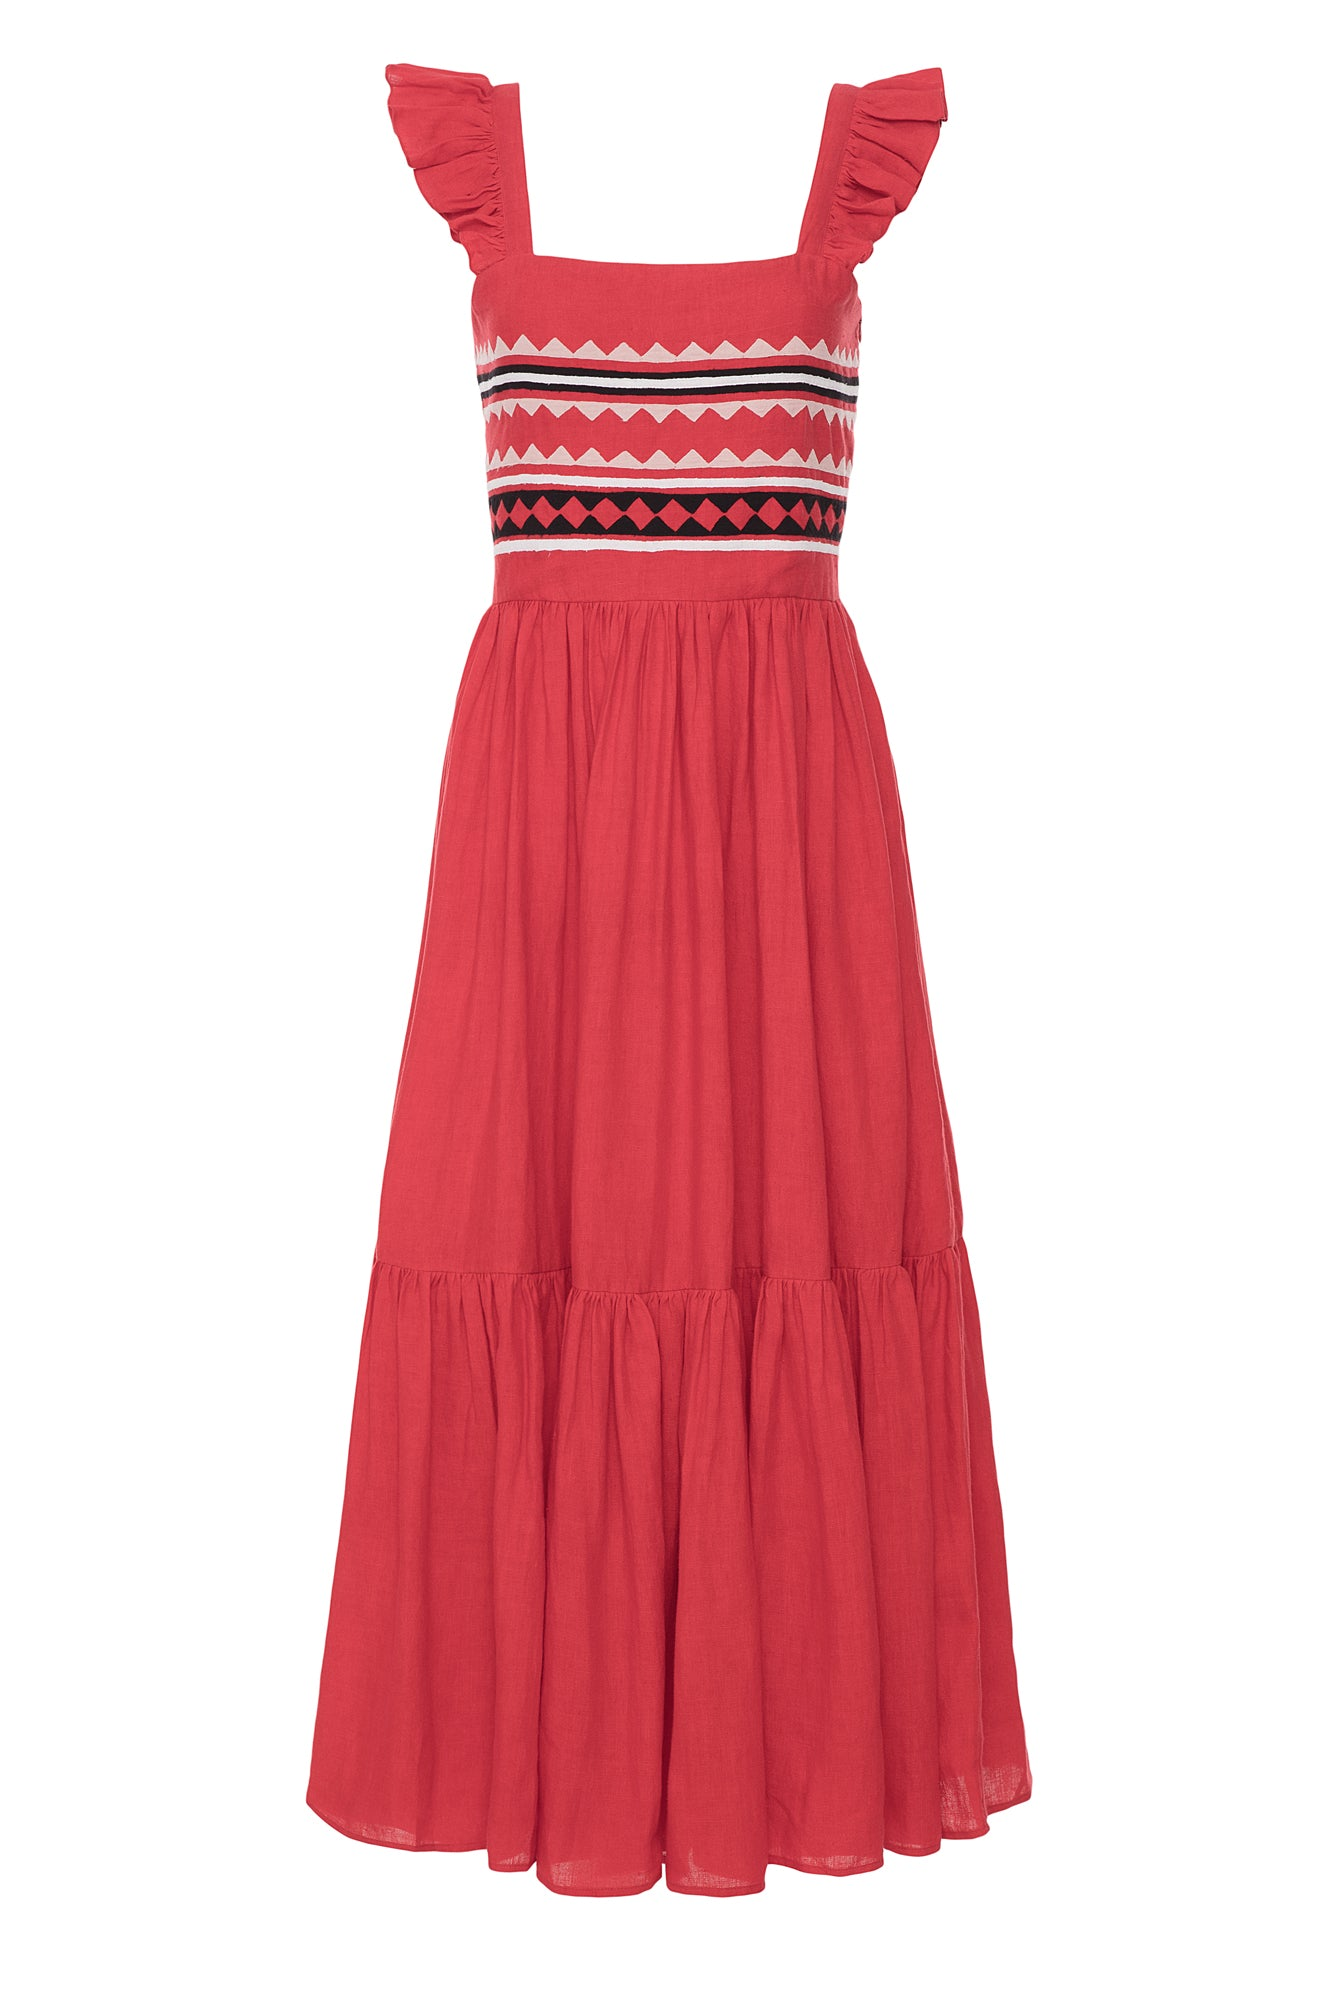 Carolina K Kuna Dress Red Triangle